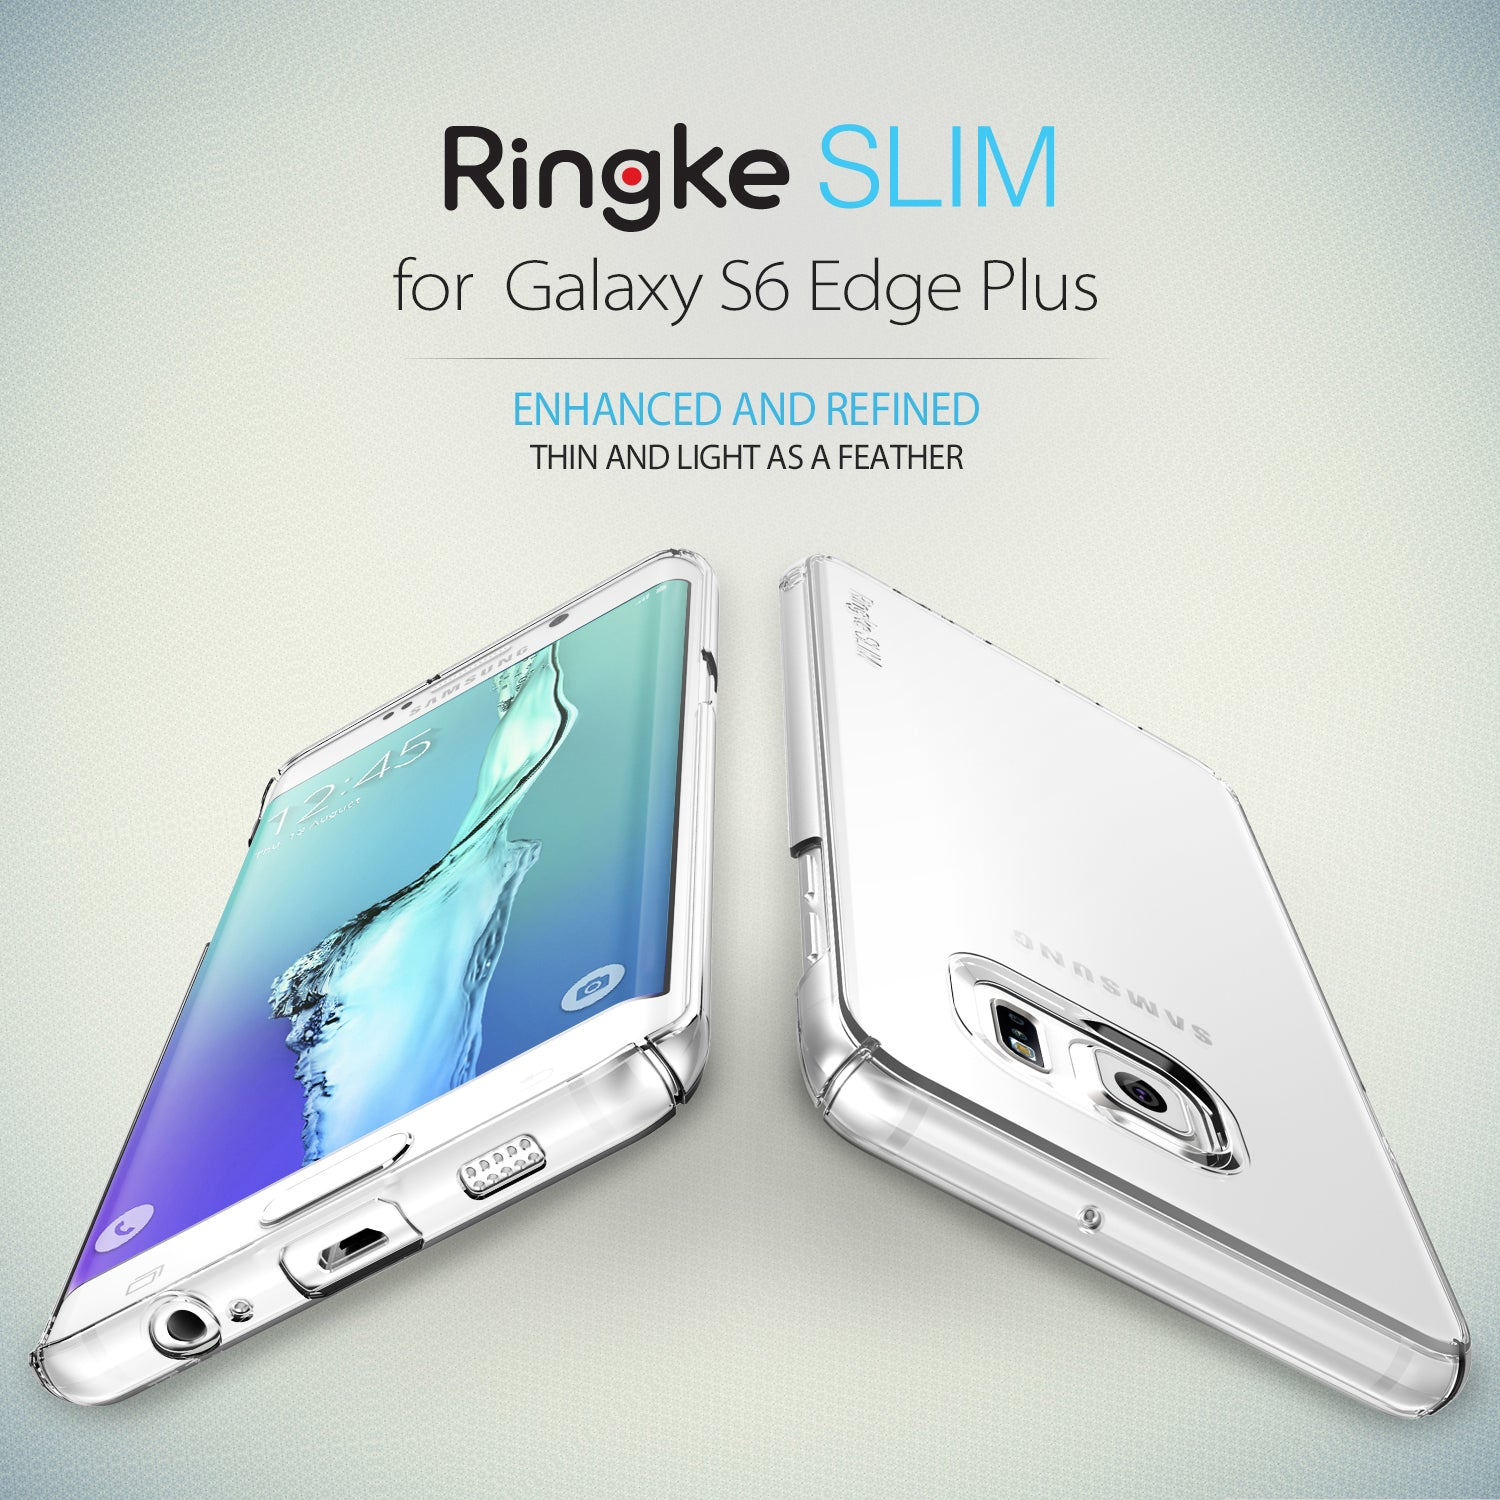 ringke slim premium thin hard pc lightweight cover case for galaxy s6 edge plus